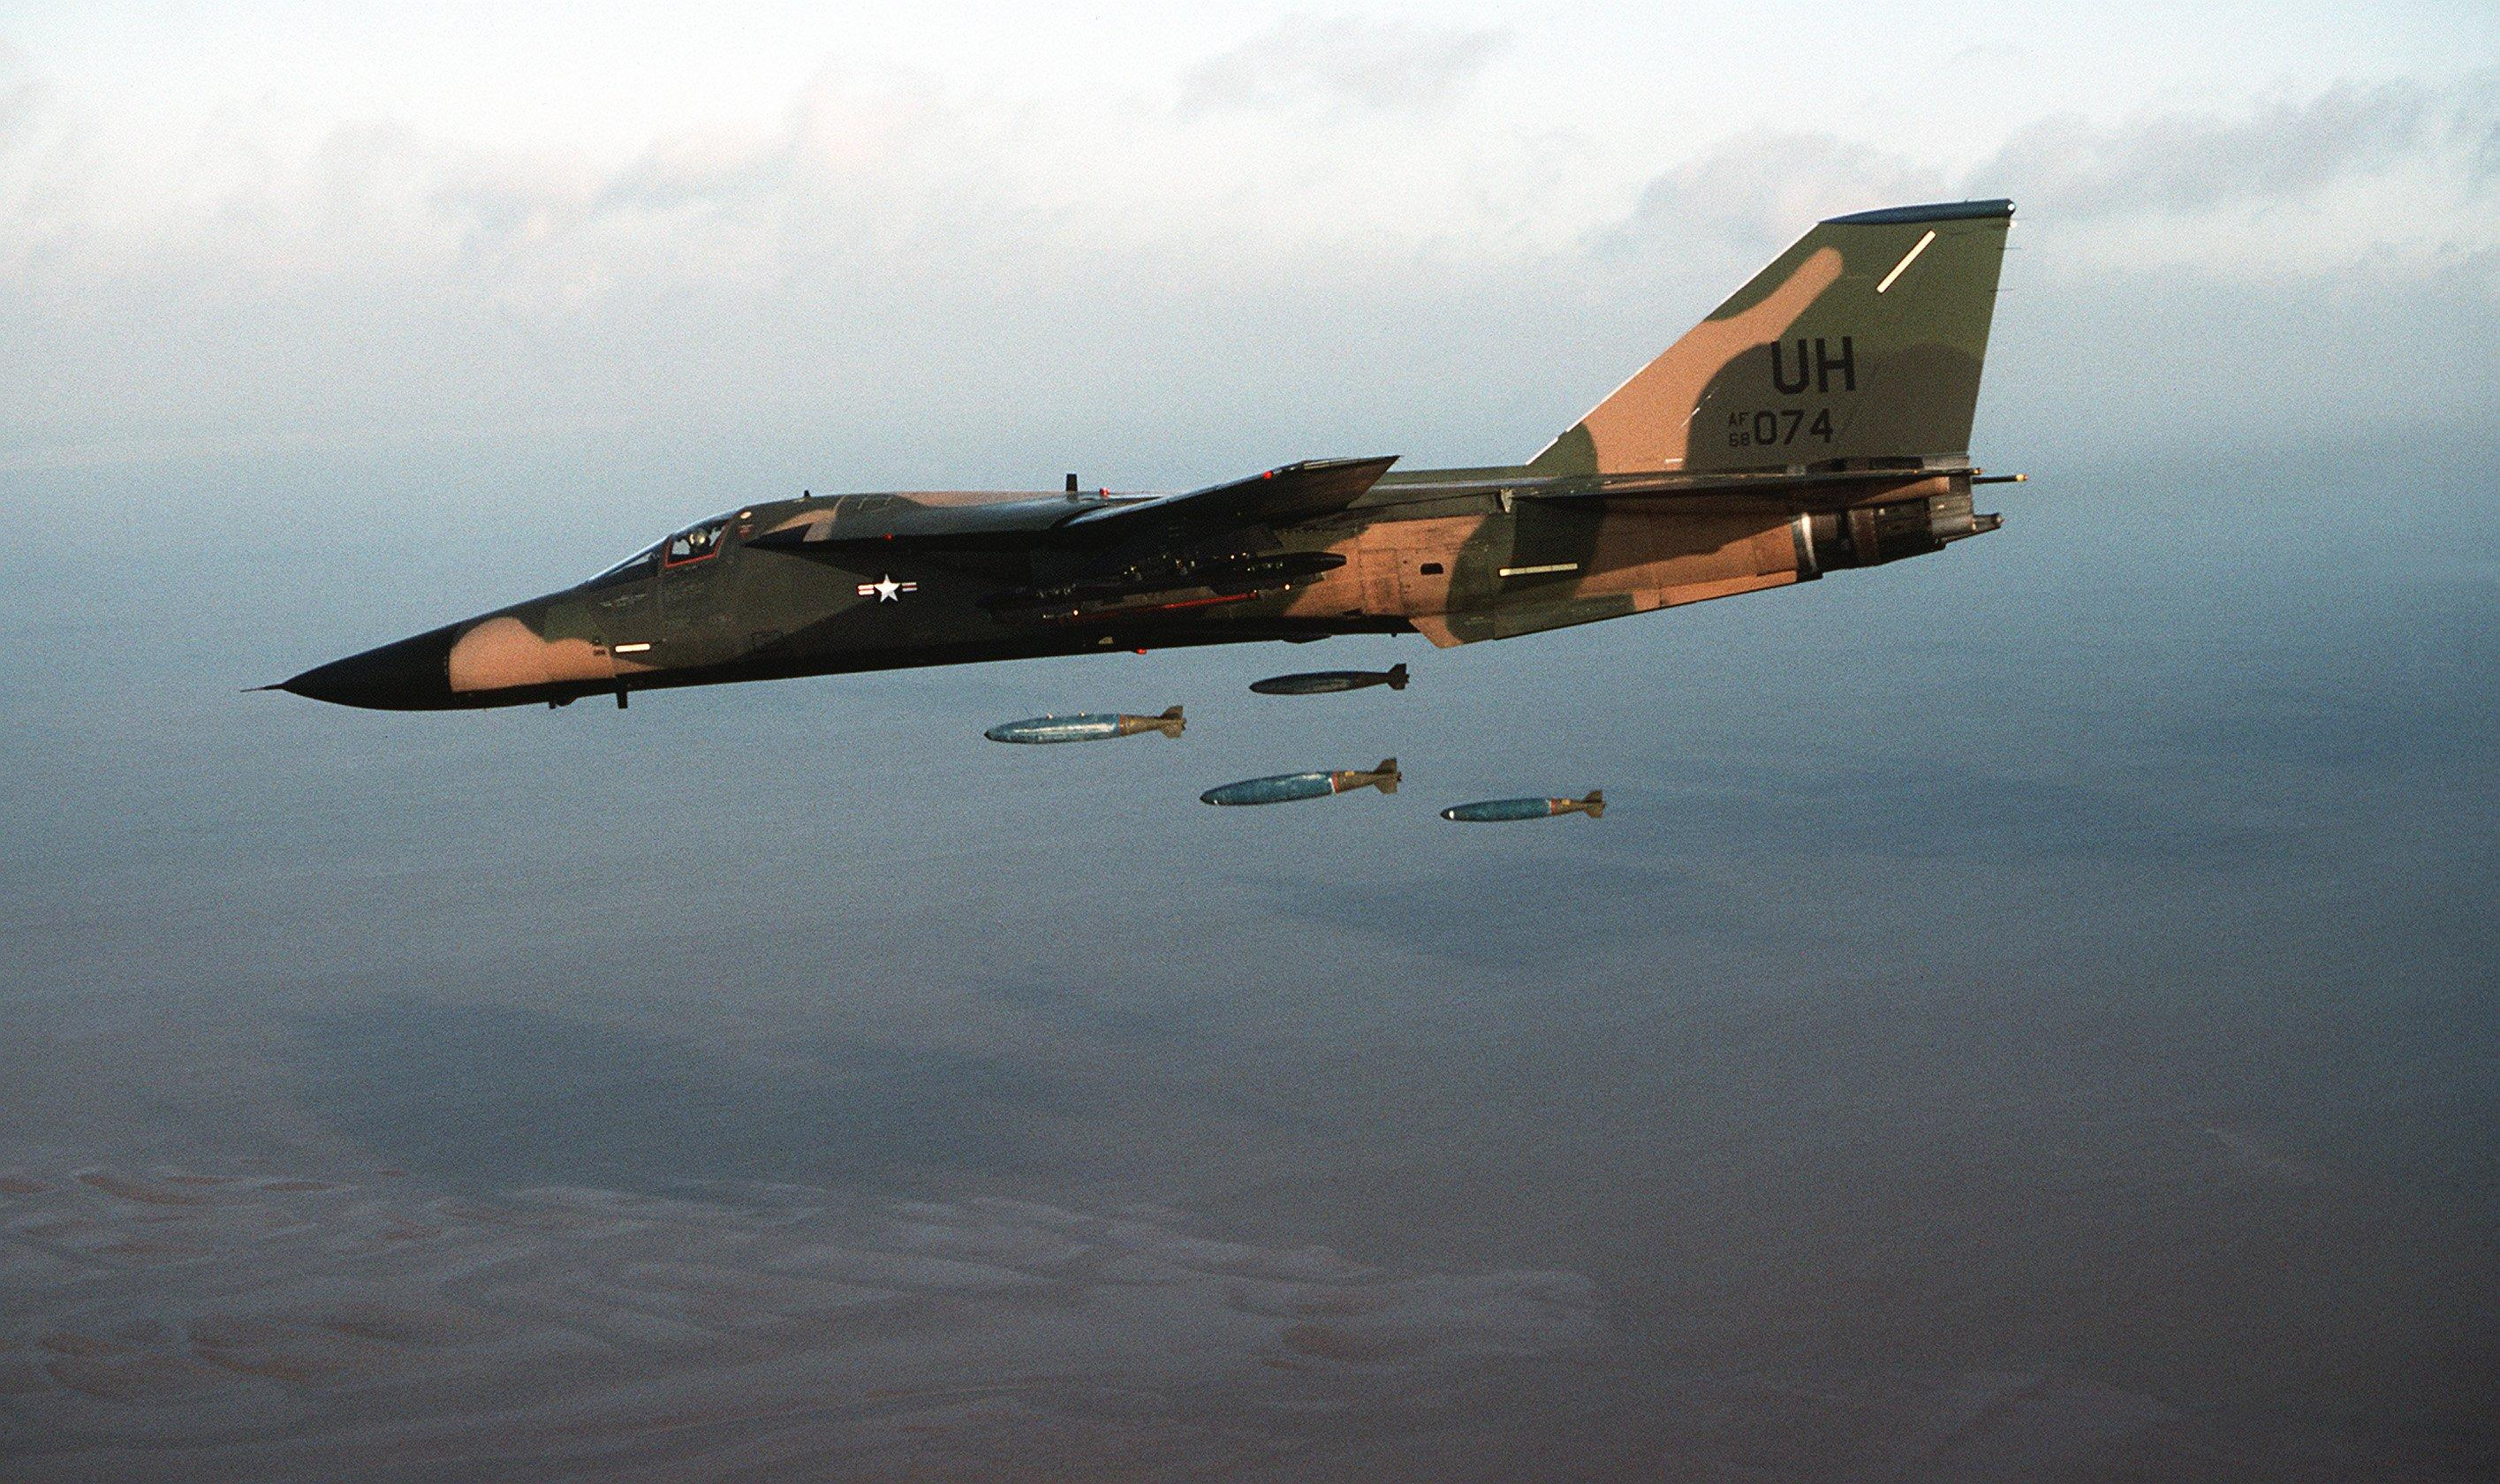 General Dynamics F-111 Aardvark wallpapers HD quality